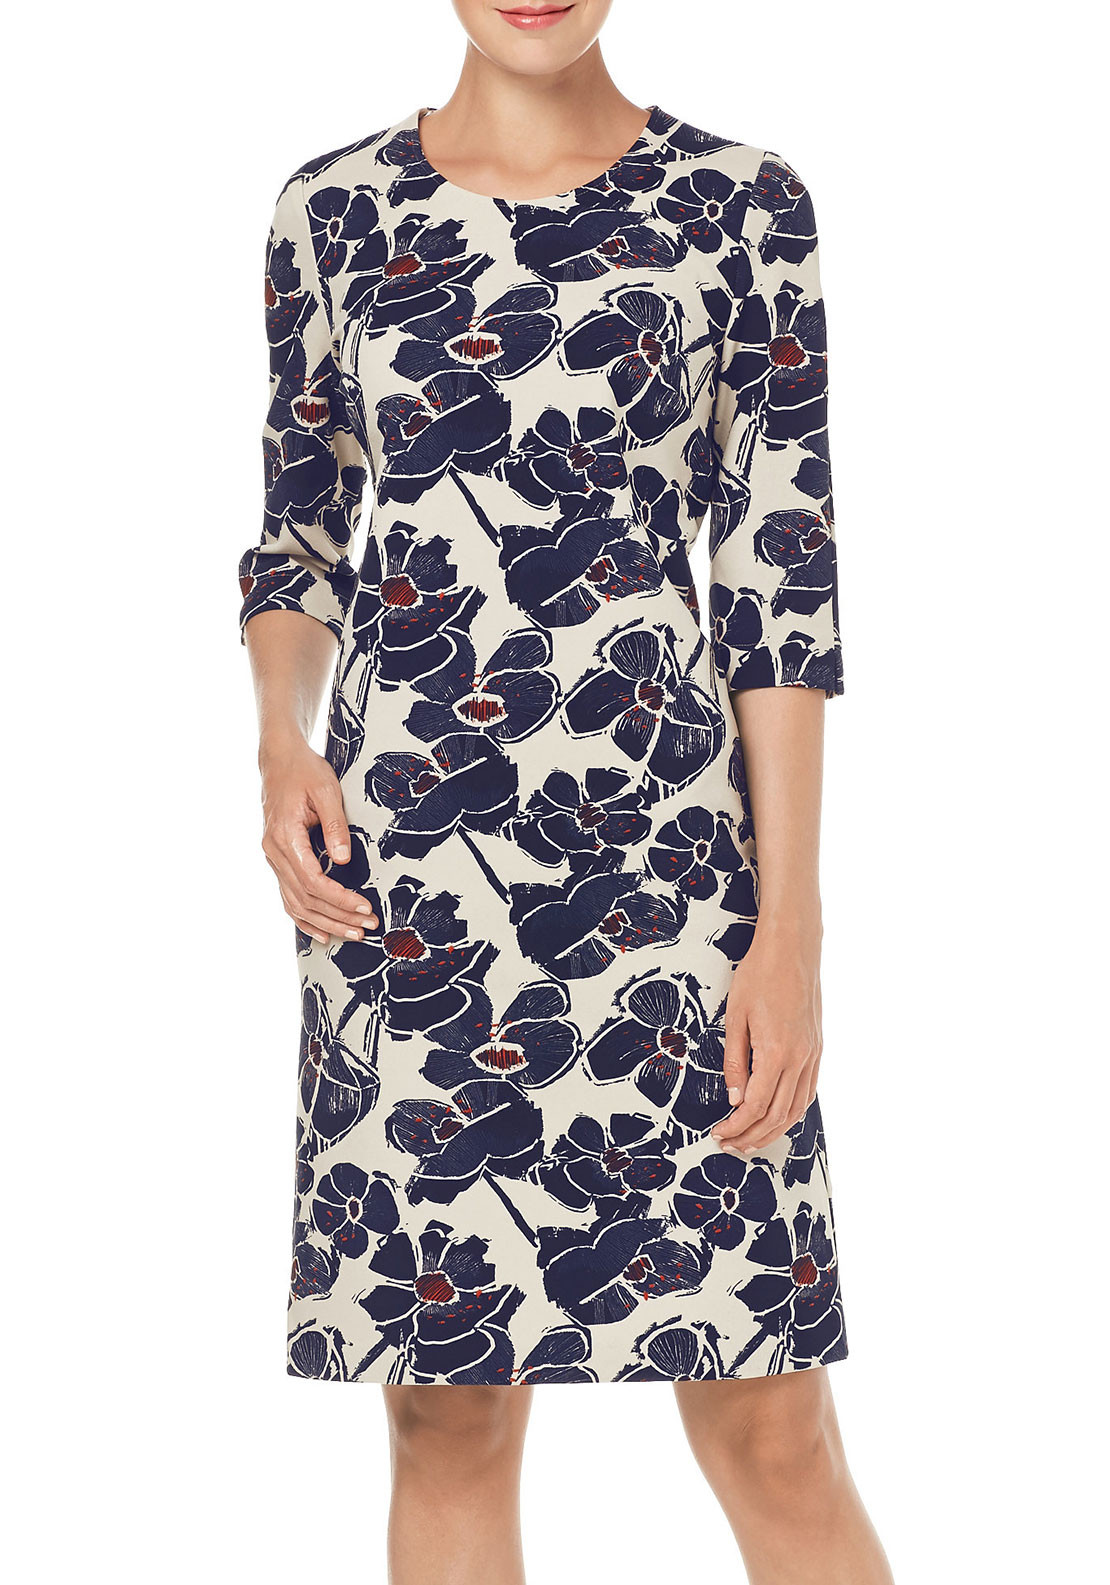 Gerry Weber Floral Print Pencil Dress, Navy Multi